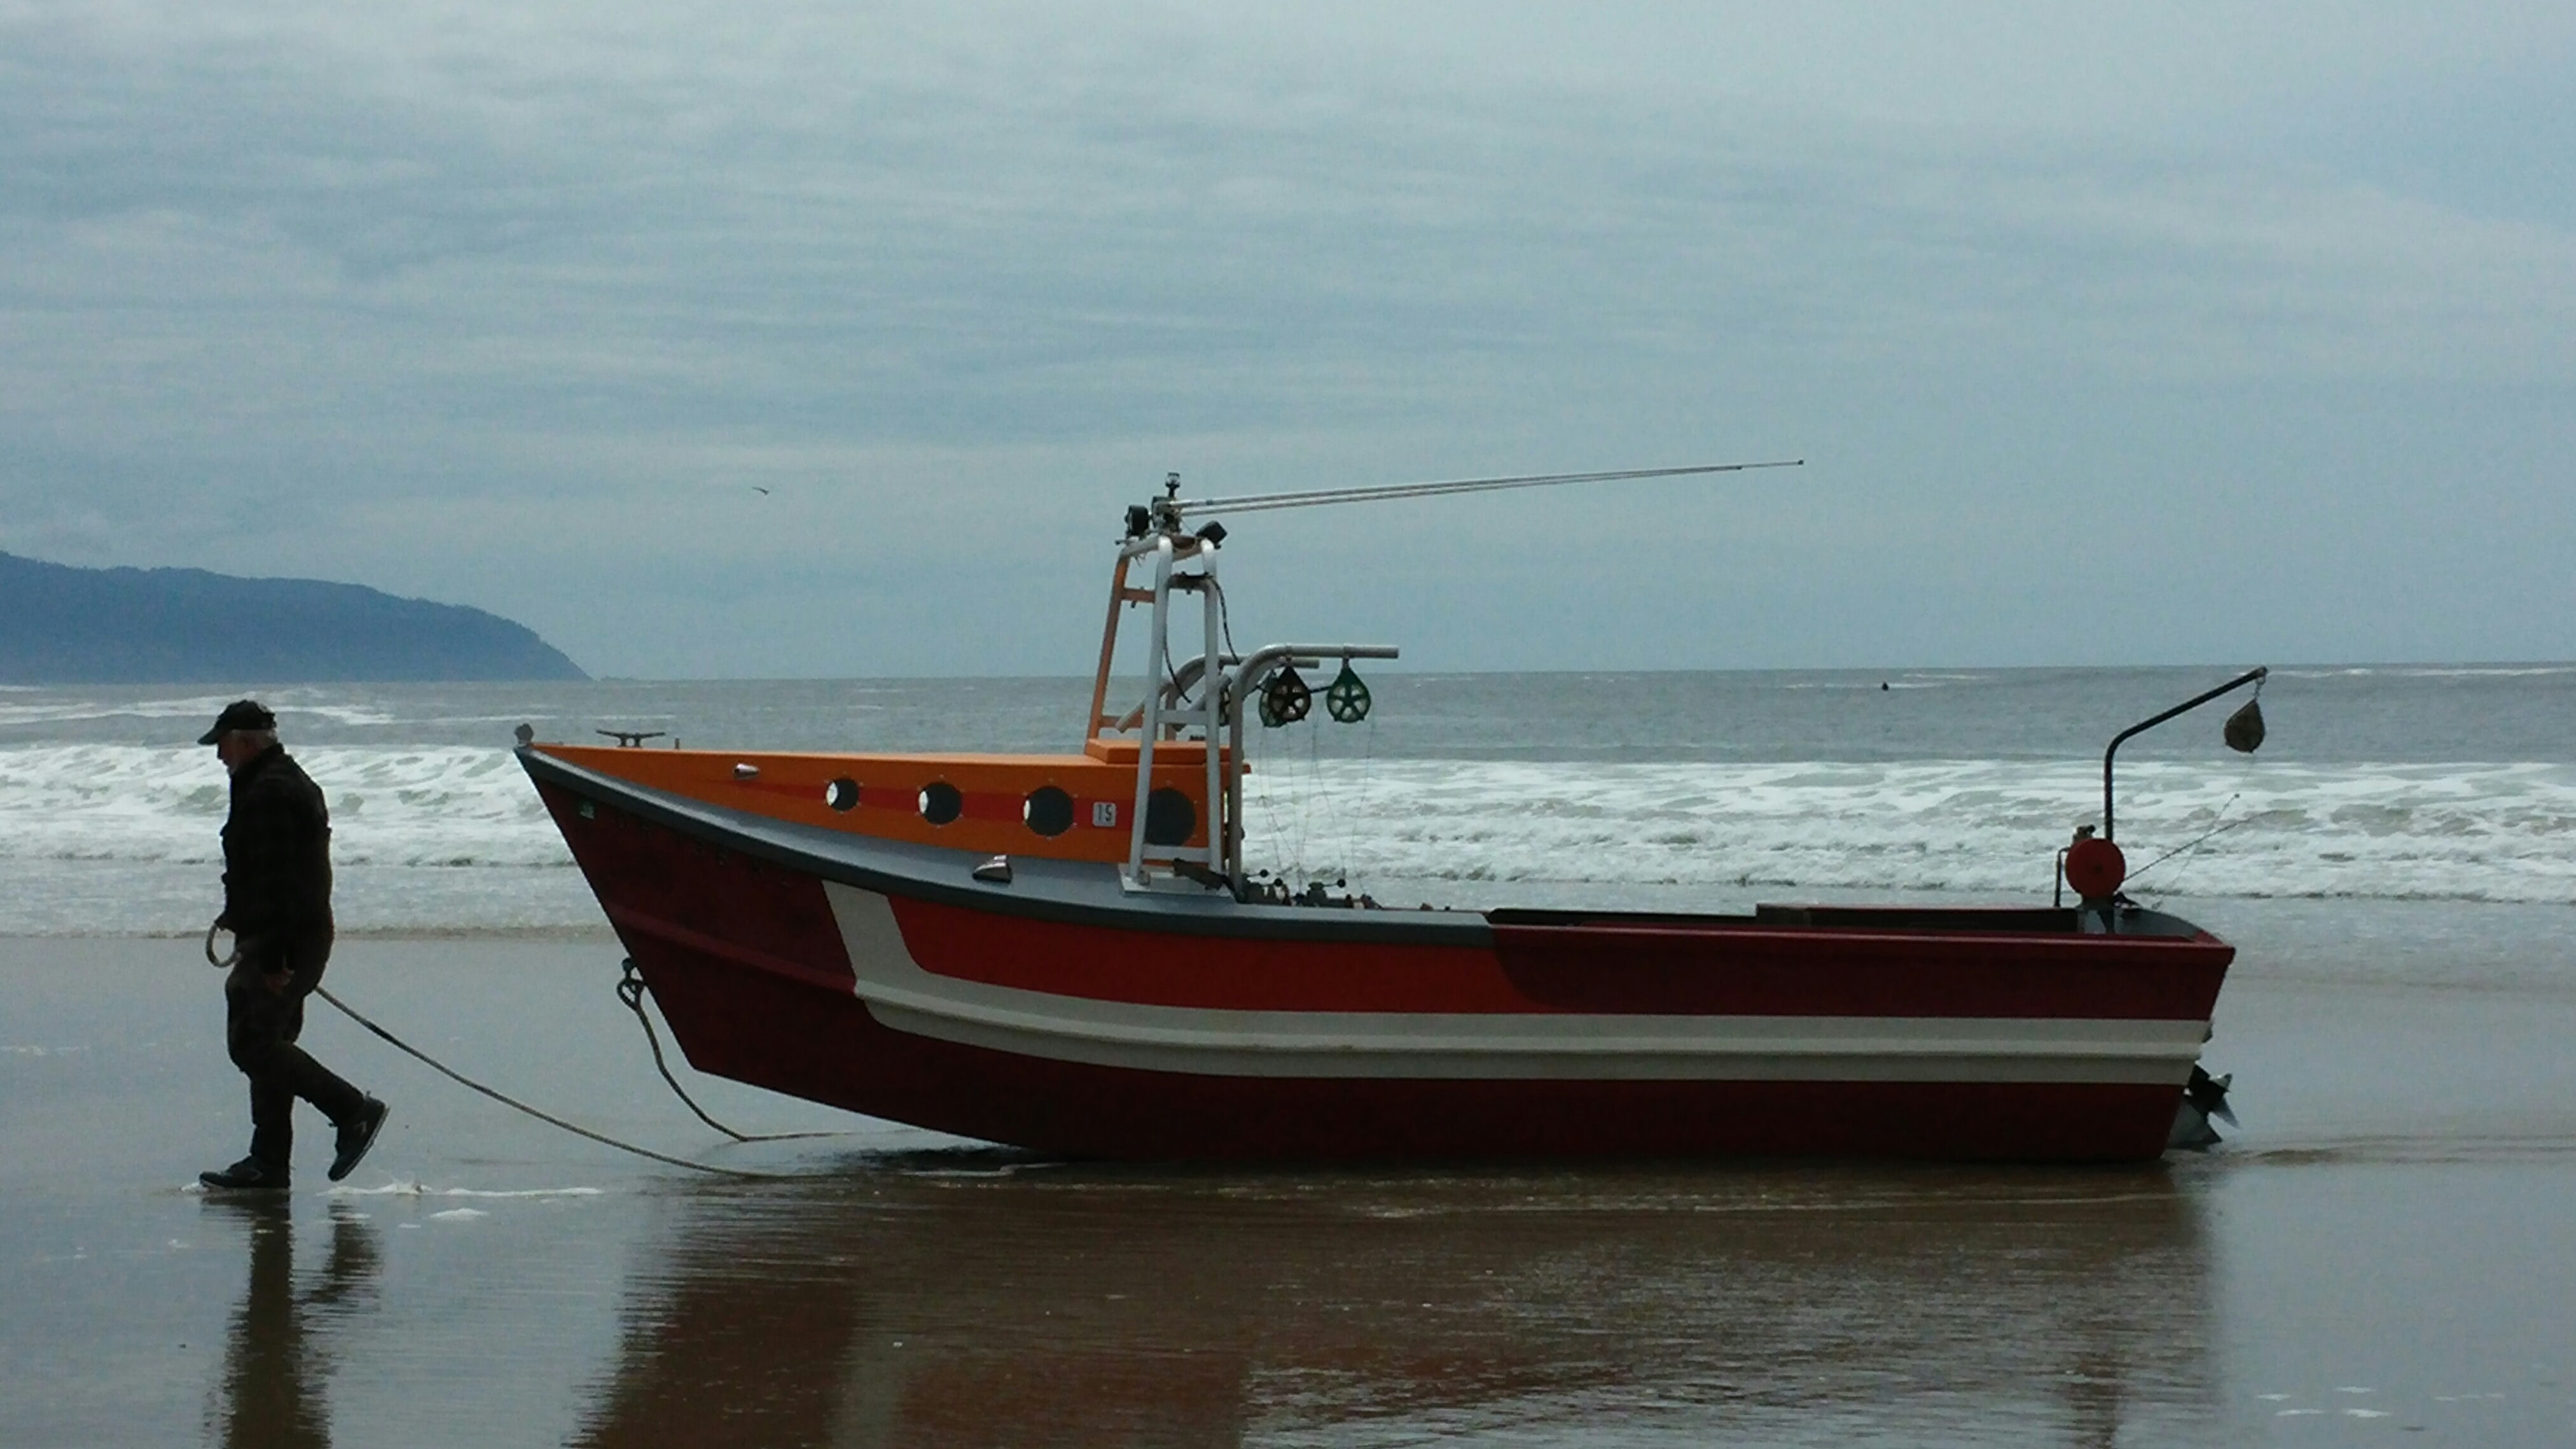 A dory fisherman brings in his boat in Pacific City, Oregon.